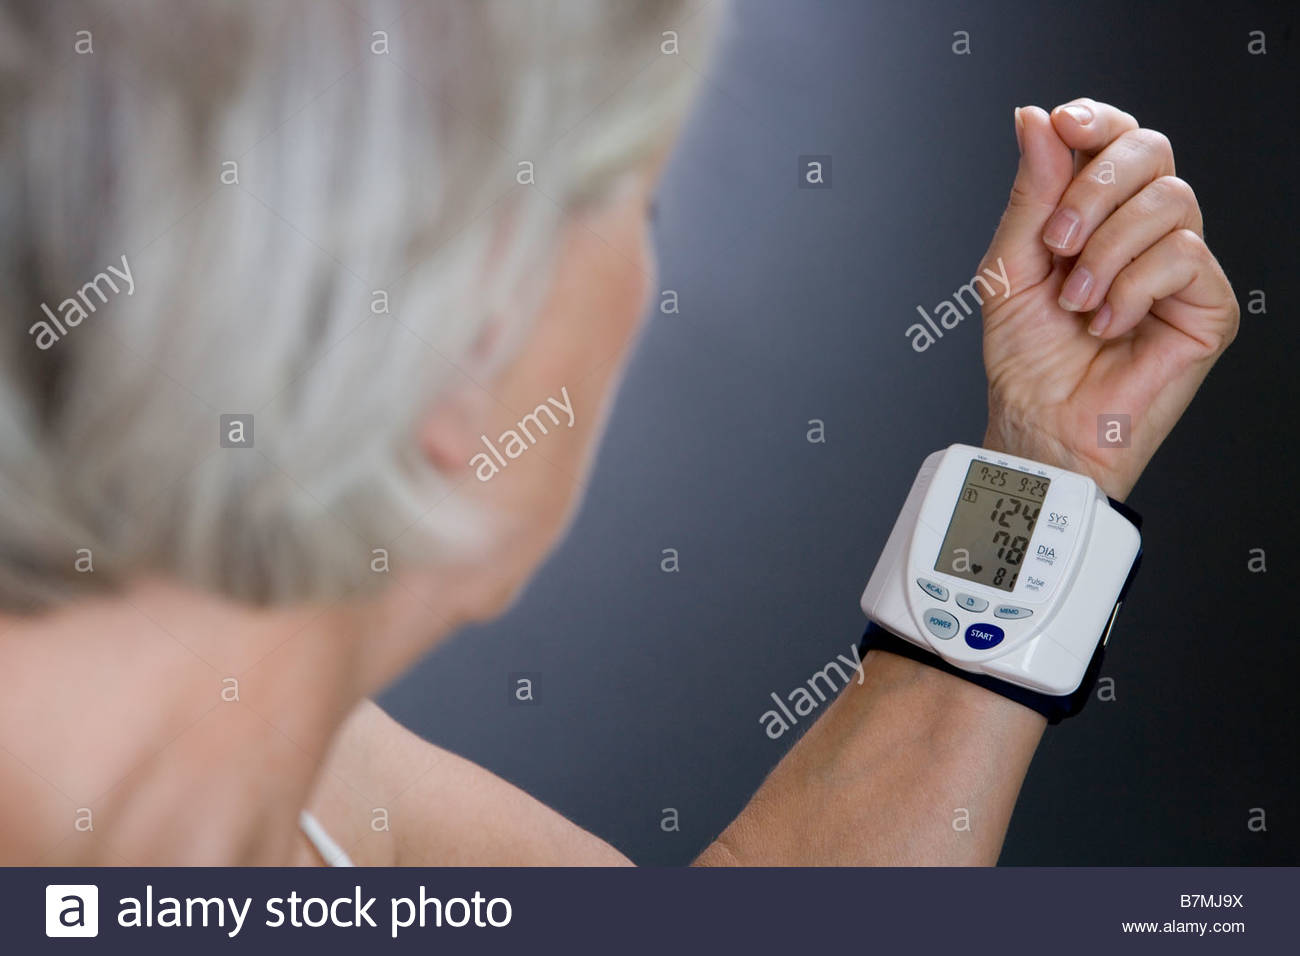 A senior woman with a heart rate monitor on her wrist - Stock Image